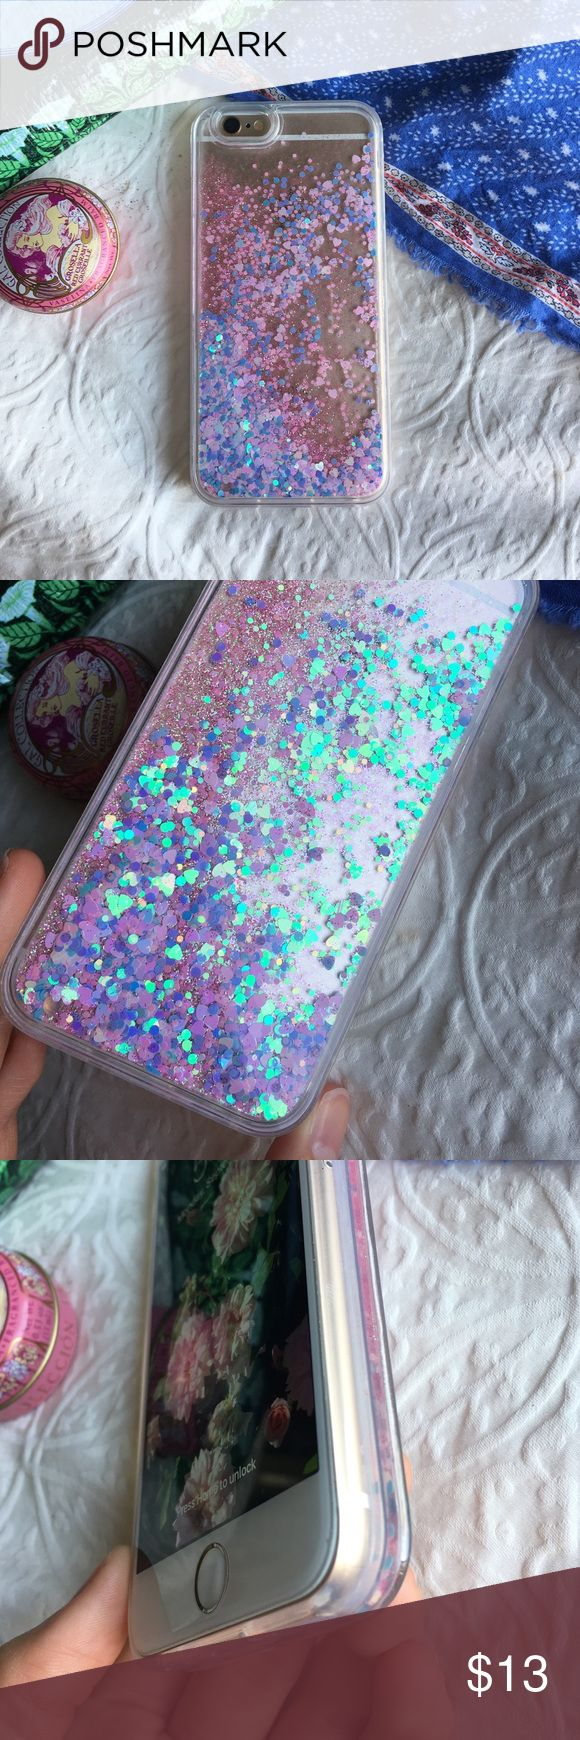 glitter phone case ✨brand new ✨pink and blue sparkle water case ✨for iphone 6/6s ✨protects back of phone from scratches ✨not from listed brand-only for exposure ✨no lowballing please ✨ships next day excluding sundays Make an offer!  tags: sparkles, cotton candy, turquoise, pretty, artsy, protective, otter box, speck, hearts, heart, brandy melville, urban outfitters, violet, tumblr, cool, apple, gift, pearlescent, holographic, translucent, transparent, clear, Brandy Melville Accessories Phone…